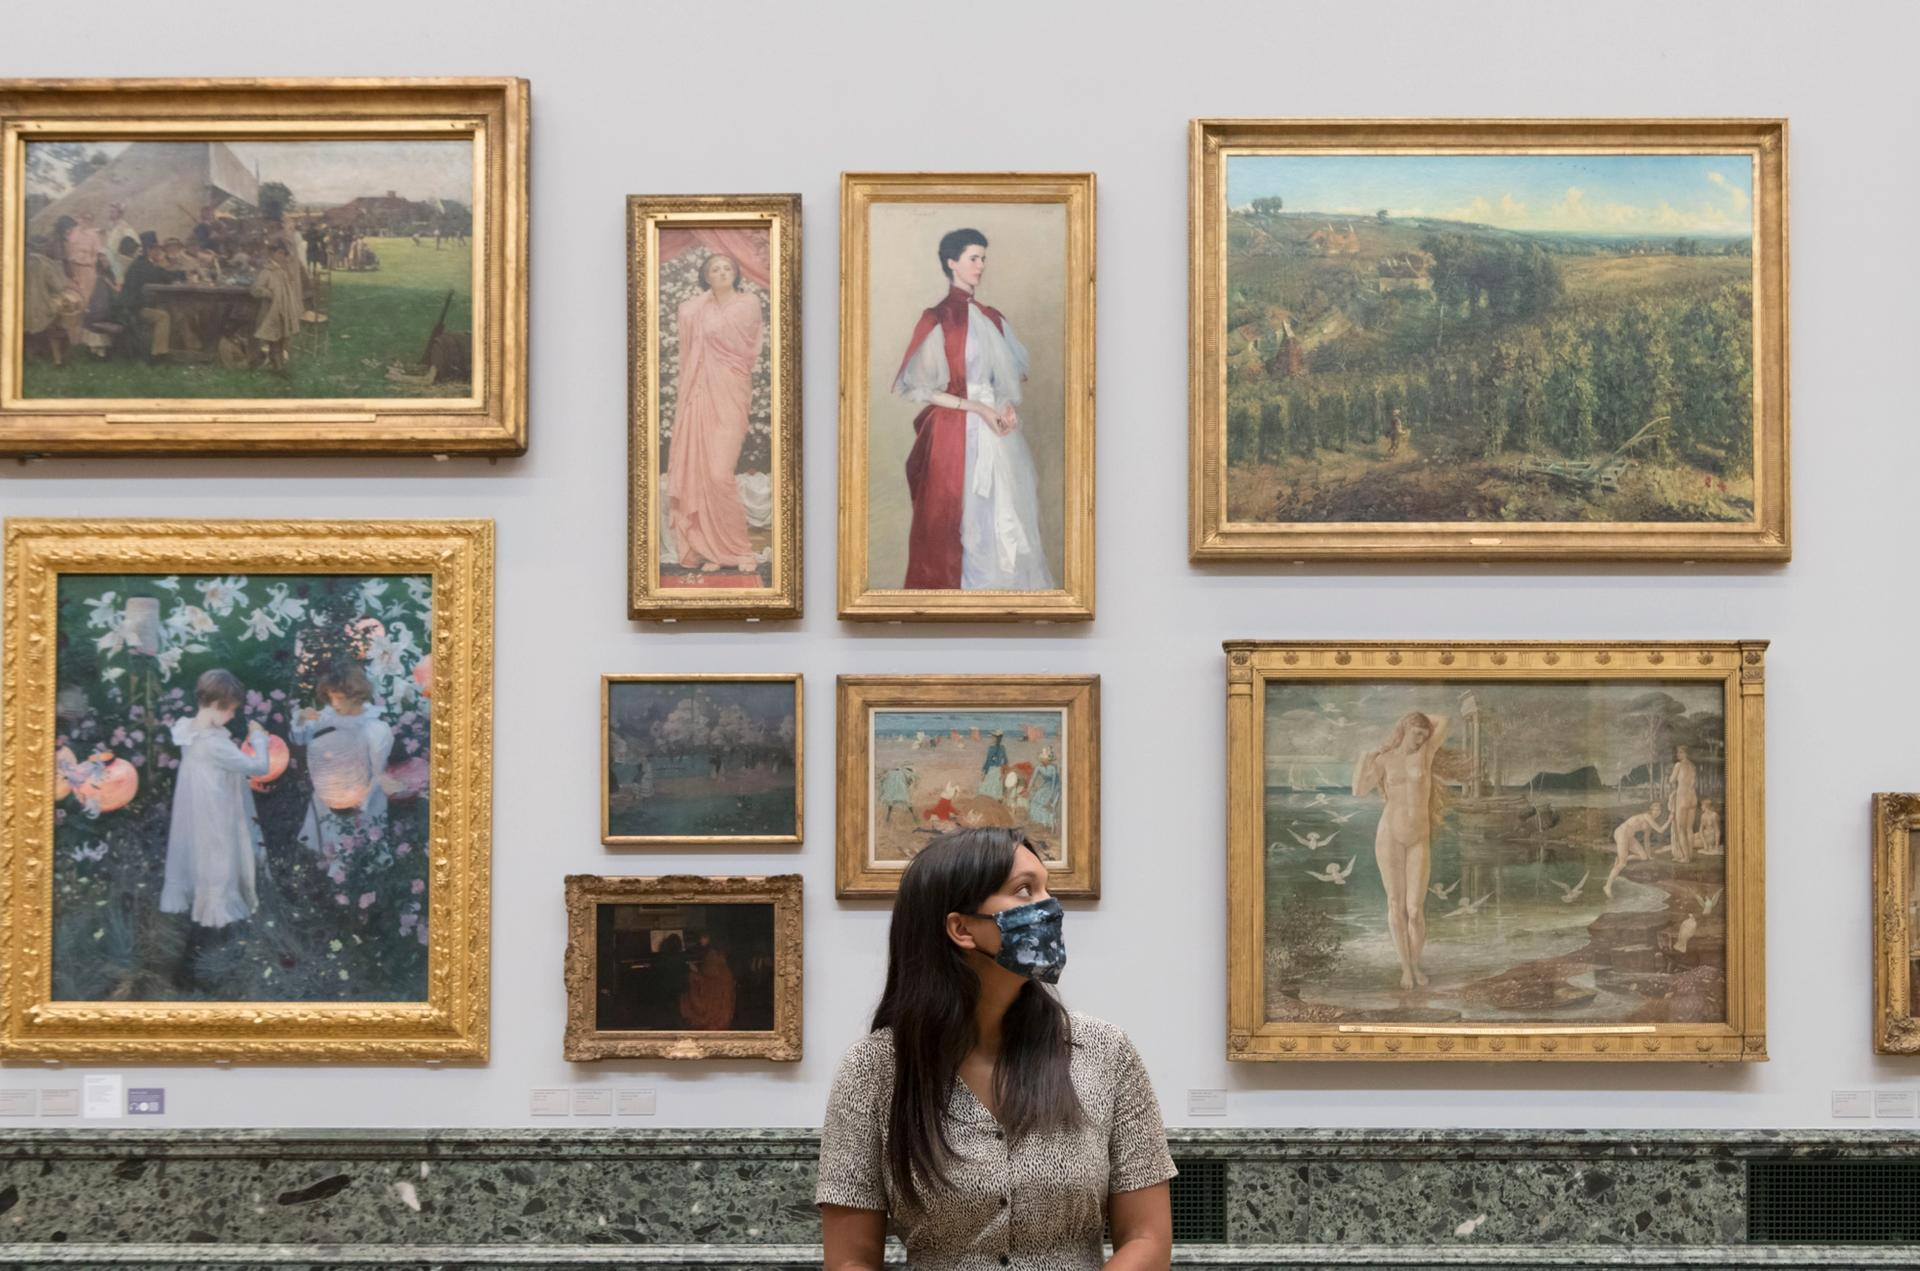 An installation view of Tate Britain's Walk through British Art collection display Courtesy of Tate photography (Oli Cowling)